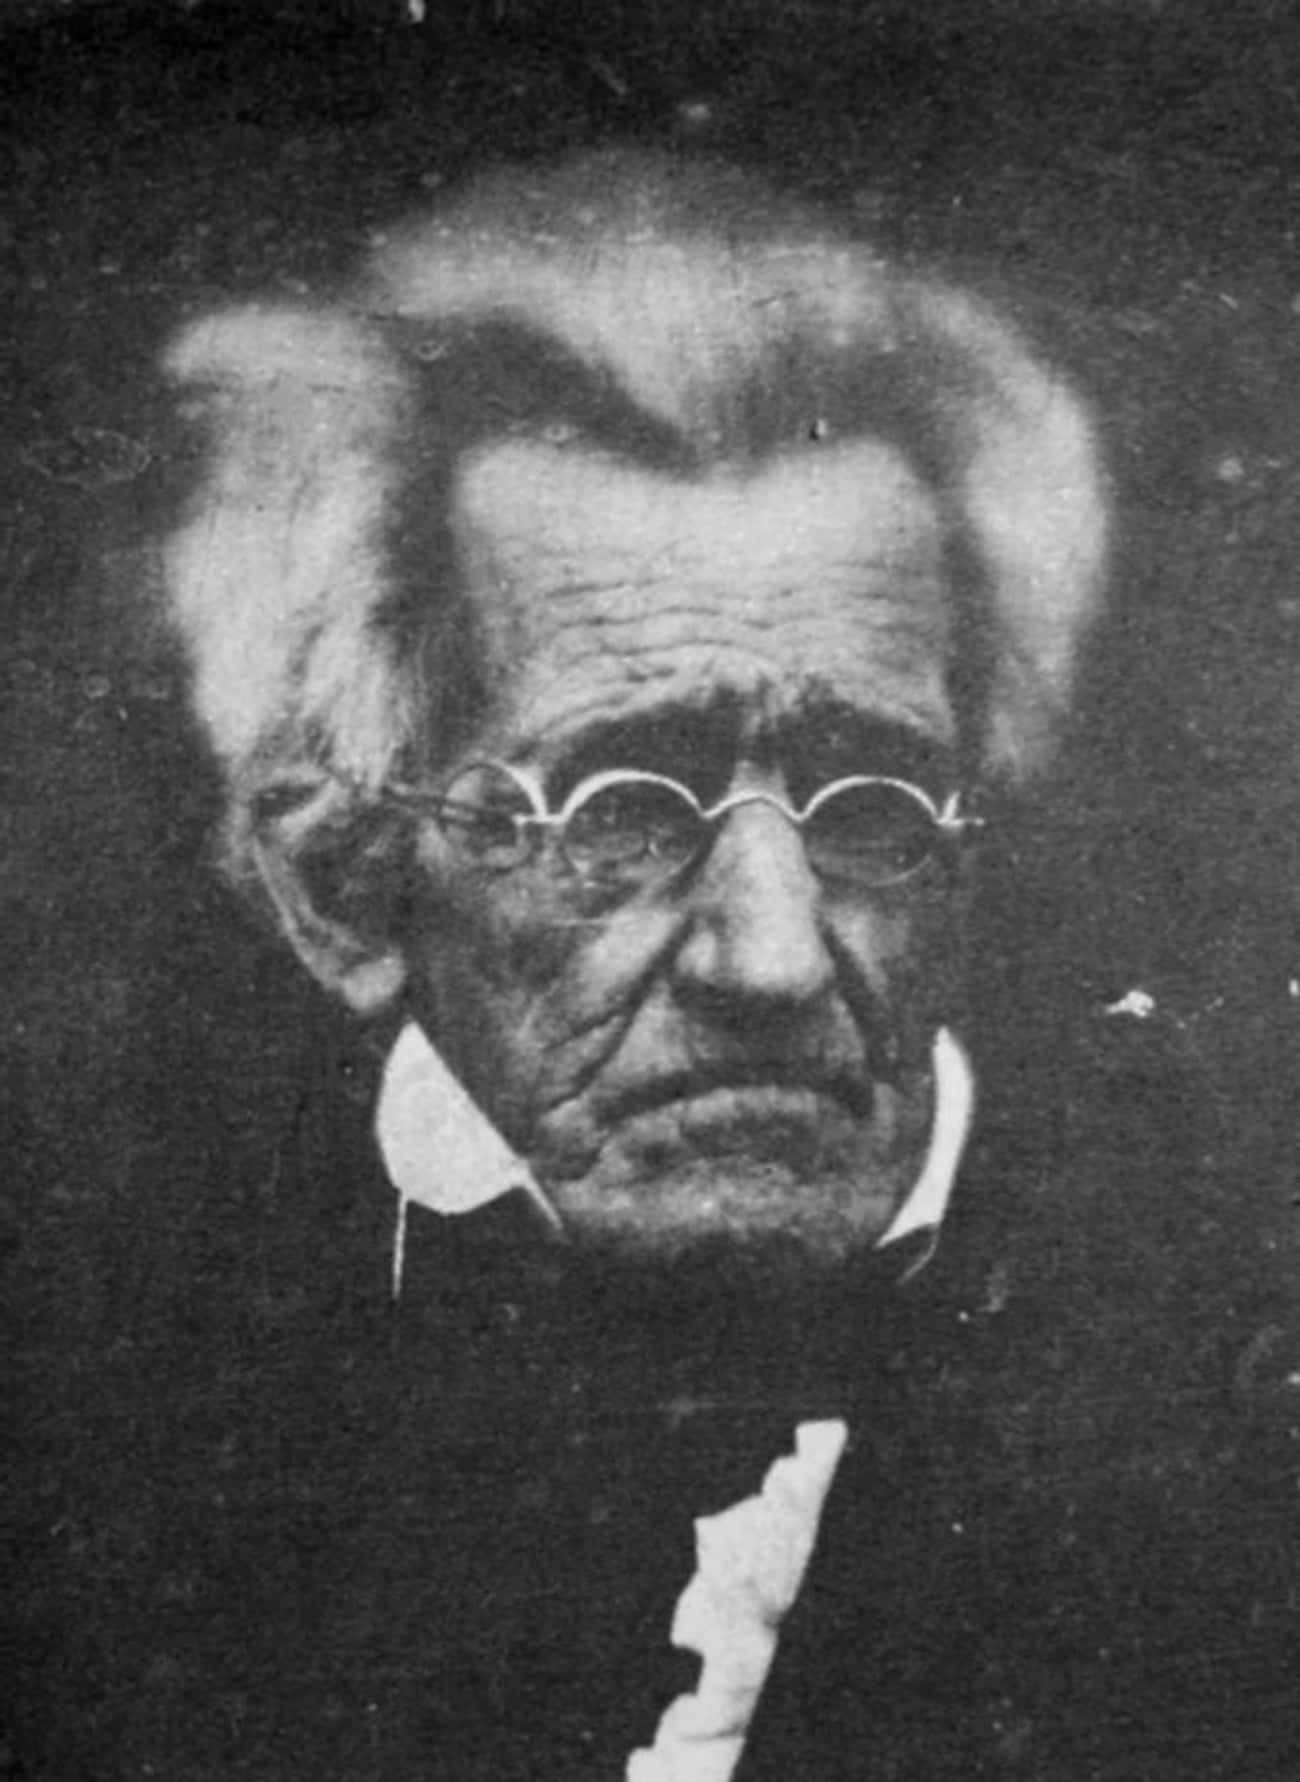 Andrew Jackson's Ghost Haunts  is listed (or ranked) 3 on the list 10 Creepy Presidential Ghost Stories from the White House